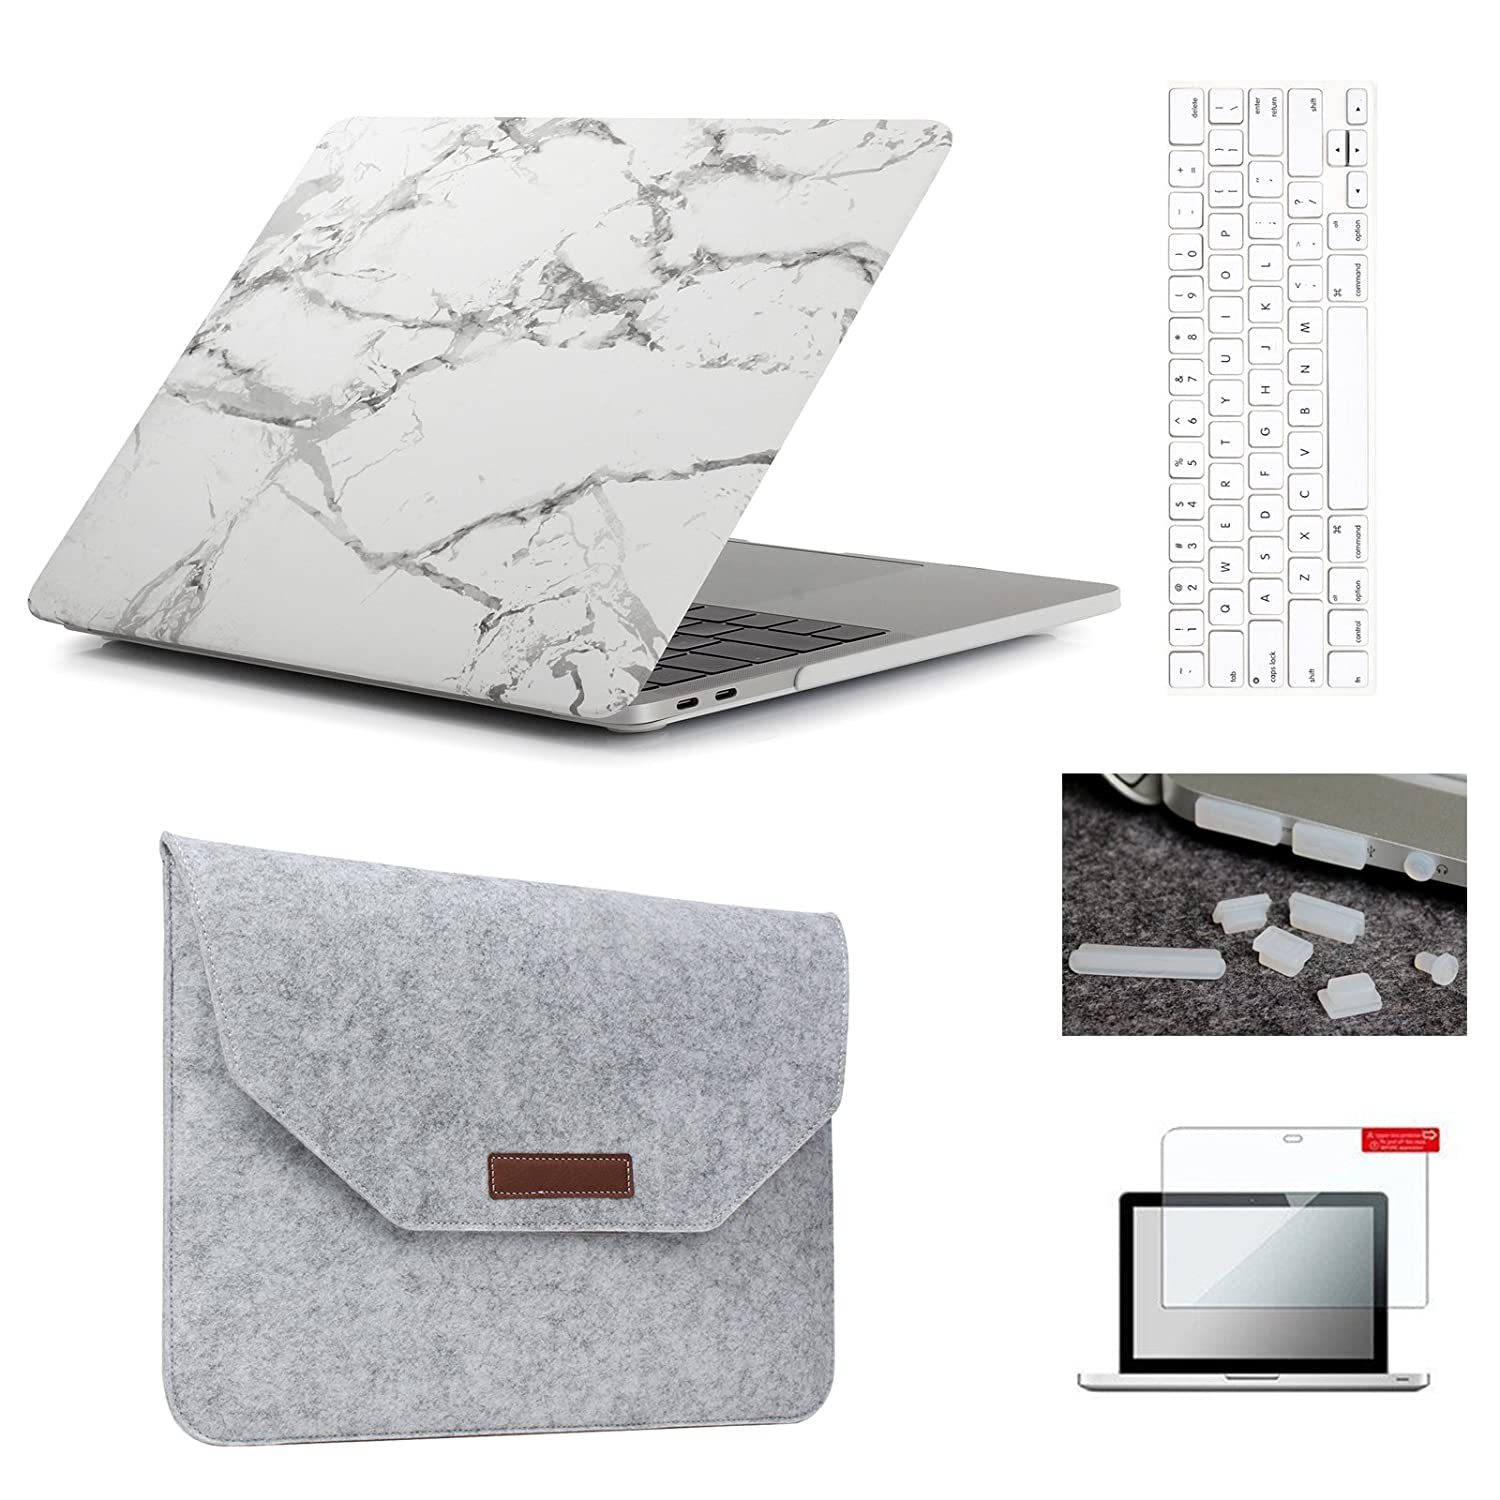 """MacBook Pro 15""""(2016 & 2017 Release)Hardshell Case & Felt Sleeve[5 in 1 Bundle] with Screen Protector,Keyboard Cover & Dust Plug for Latest MacBook Pro 15"""" A1707 w/Touch Bar Touch ID - White Marble"""